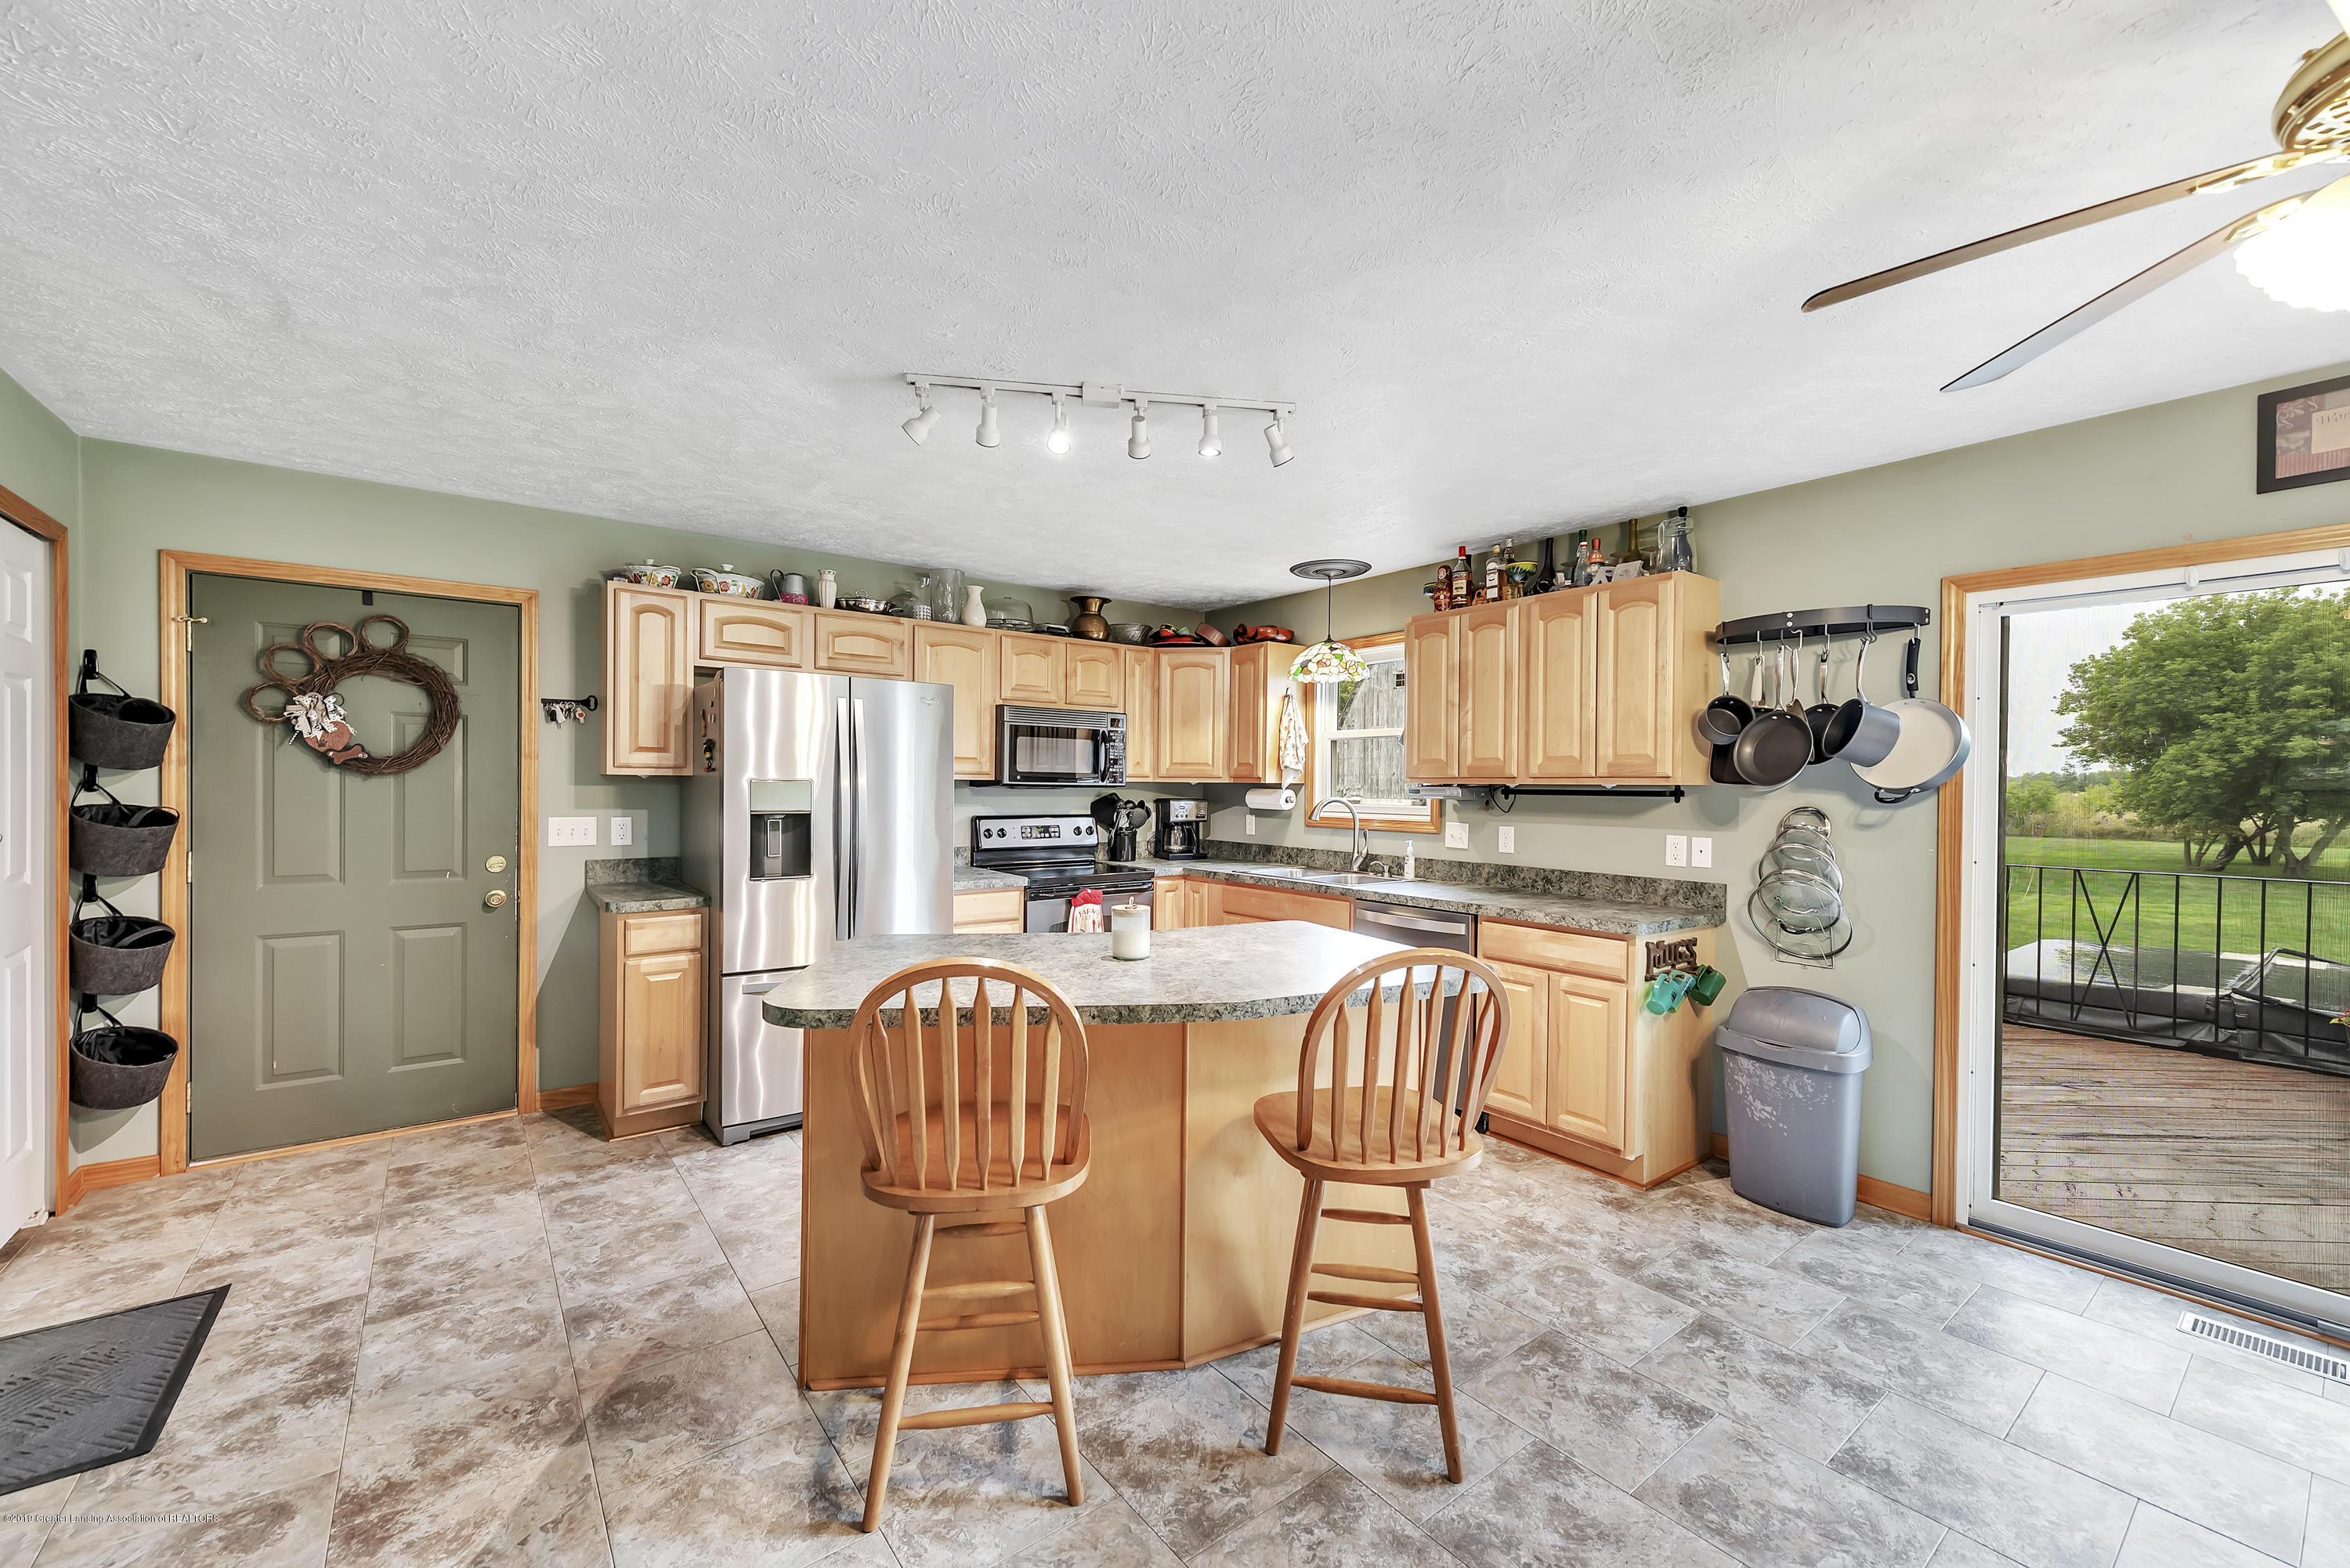 5674 W Barnes Rd - 5674-West-Barnes-Road-Eaton-Michigan-win - 14